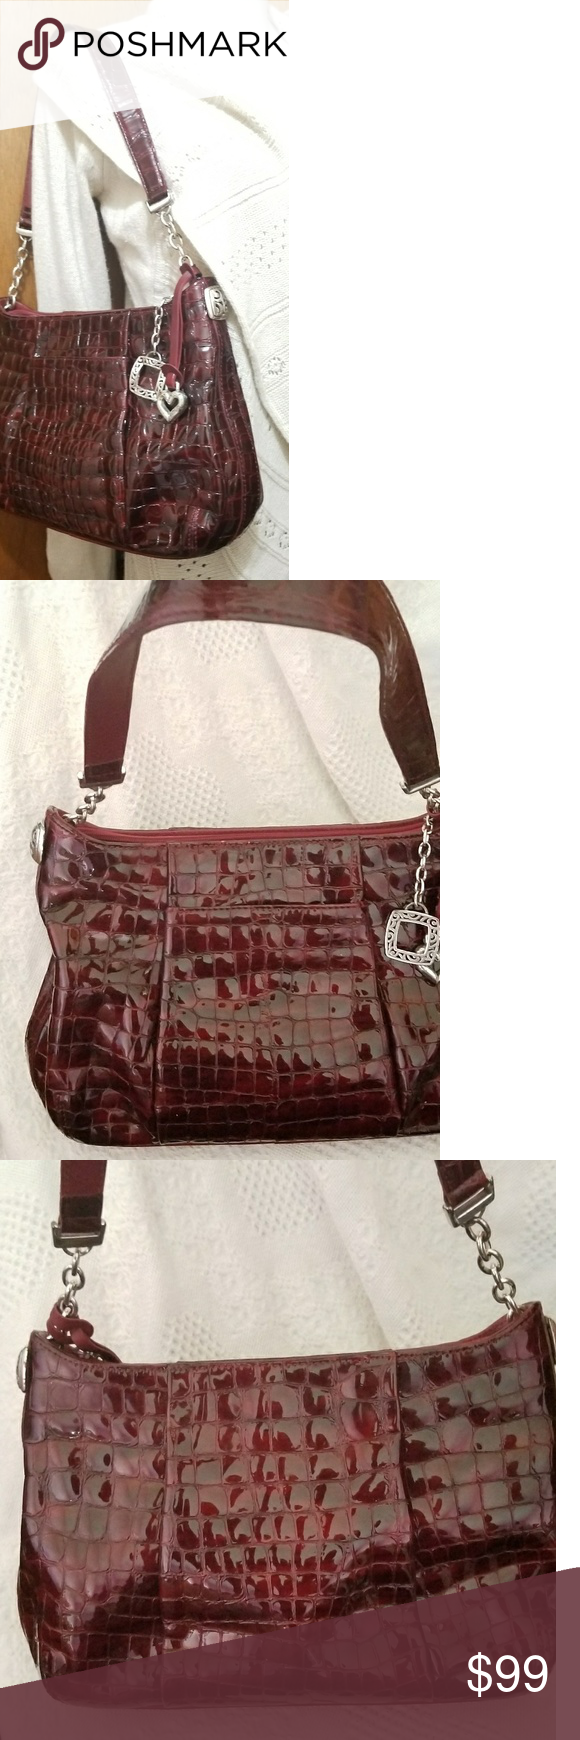 Brighton Purse Muse Shoulder Bag Burgundy Croc The Strap Has A Drop Of Roximately 10 Inches This Stunning Is 8 3 4 In